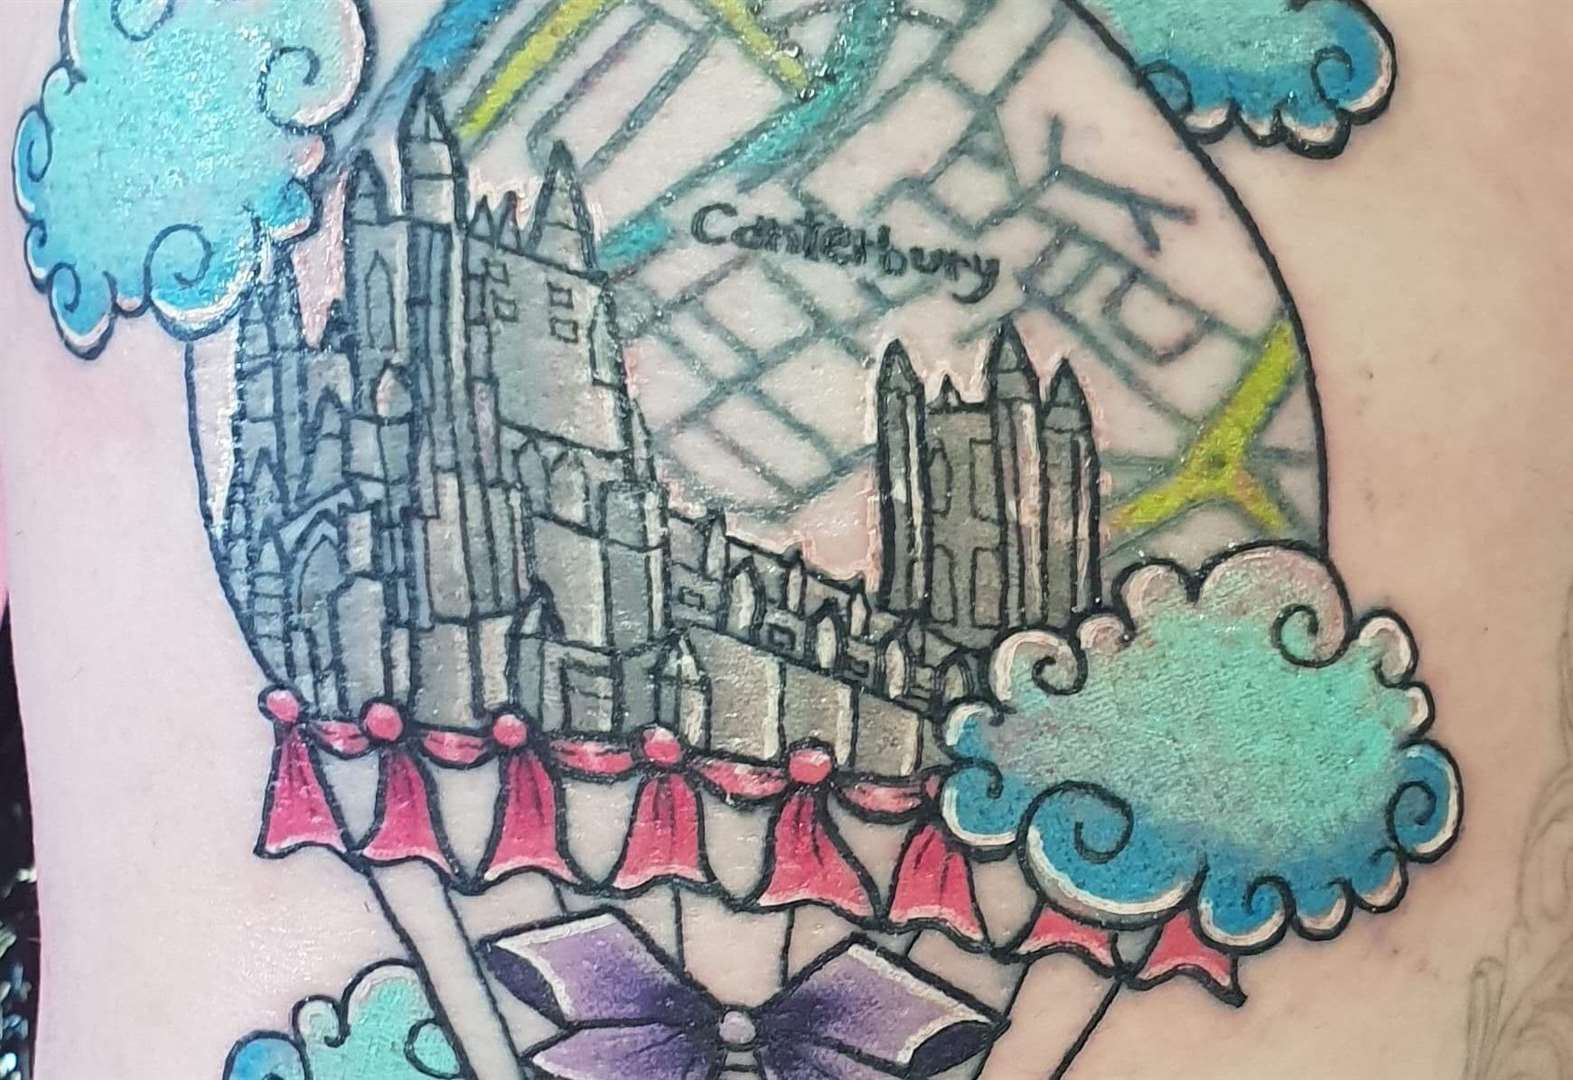 No regrets after bold tattoo of city